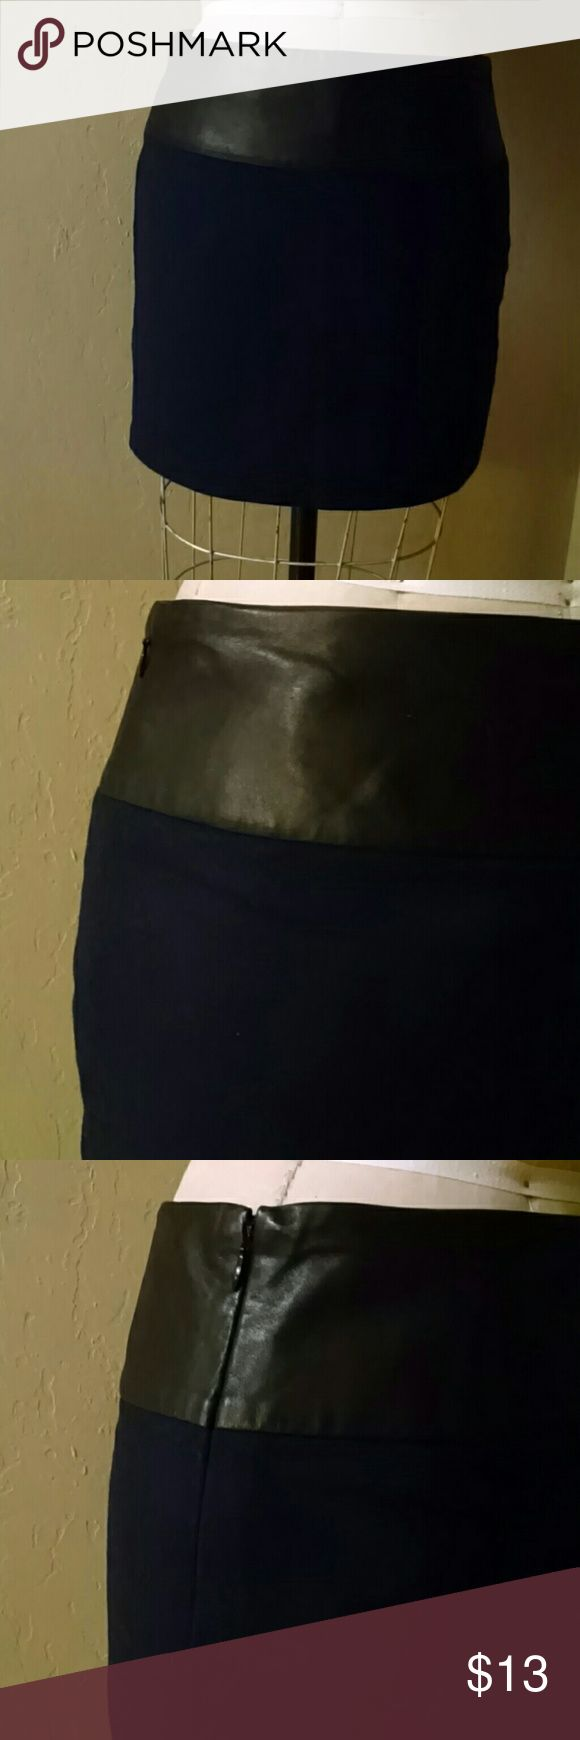 """Navy wool/black leather Gap mini skirt Genuine black leather band at waist sits below natural waist. (Dress form is size 9, so skirt does not suit properly in photo) navy skirt is wool/poly/rayon. Lining is polyester. Side seam closure is concealed side zipper. Dry clean only. 16"""" at center back from upper edge of waist band. From a smoke free, pet free home. GAP Skirts Mini"""